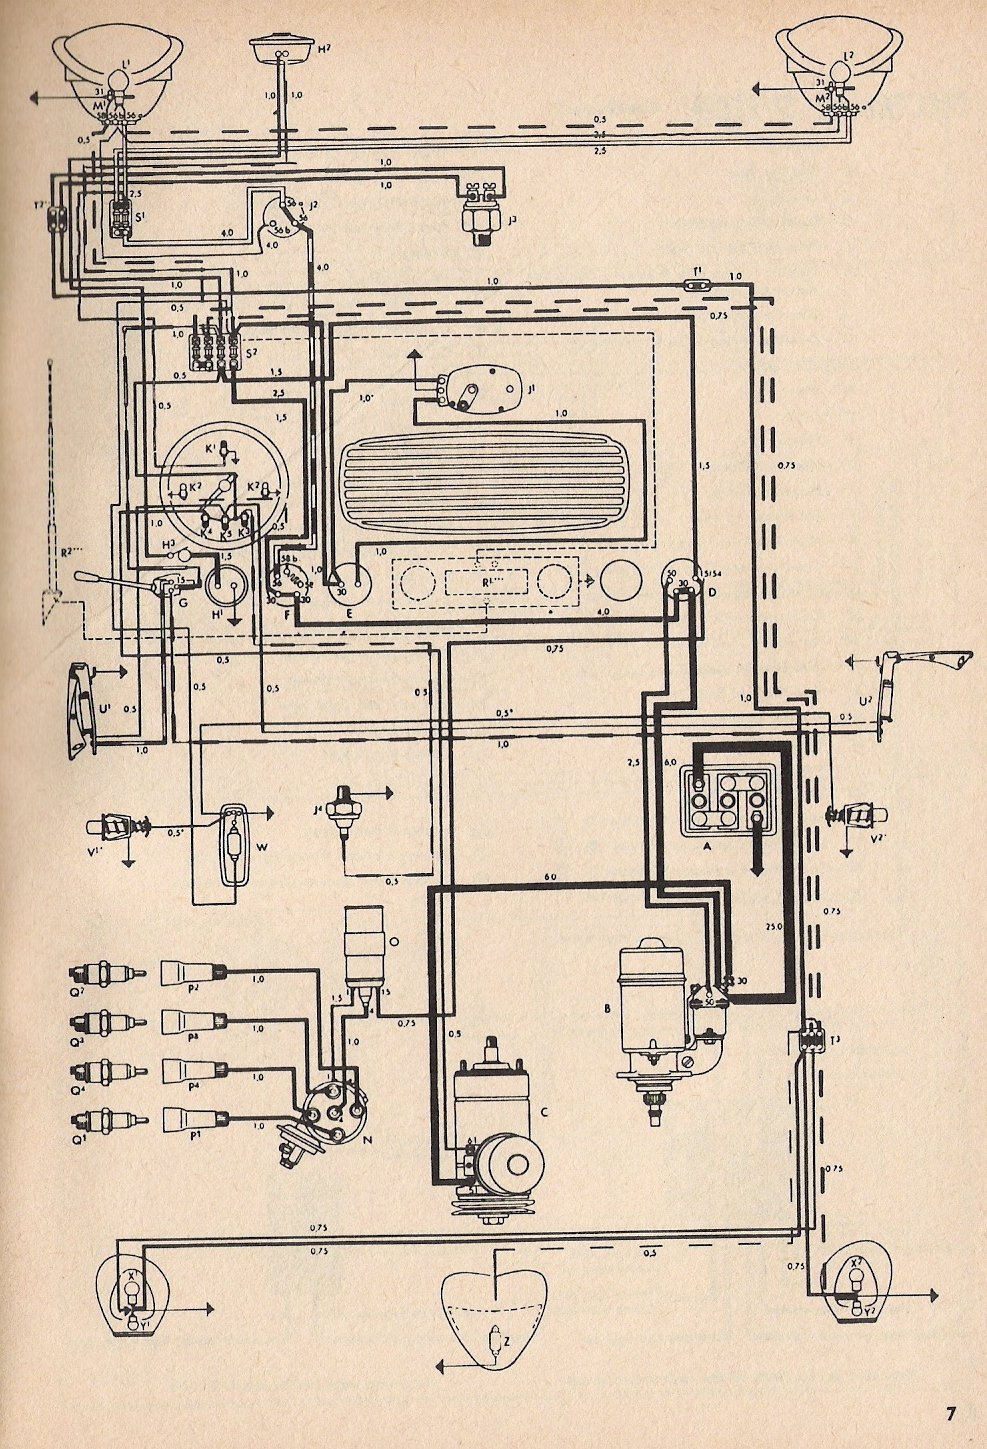 1600 Vw Beetle Wiring Diagram The Portal And Forum Of Images Gallery